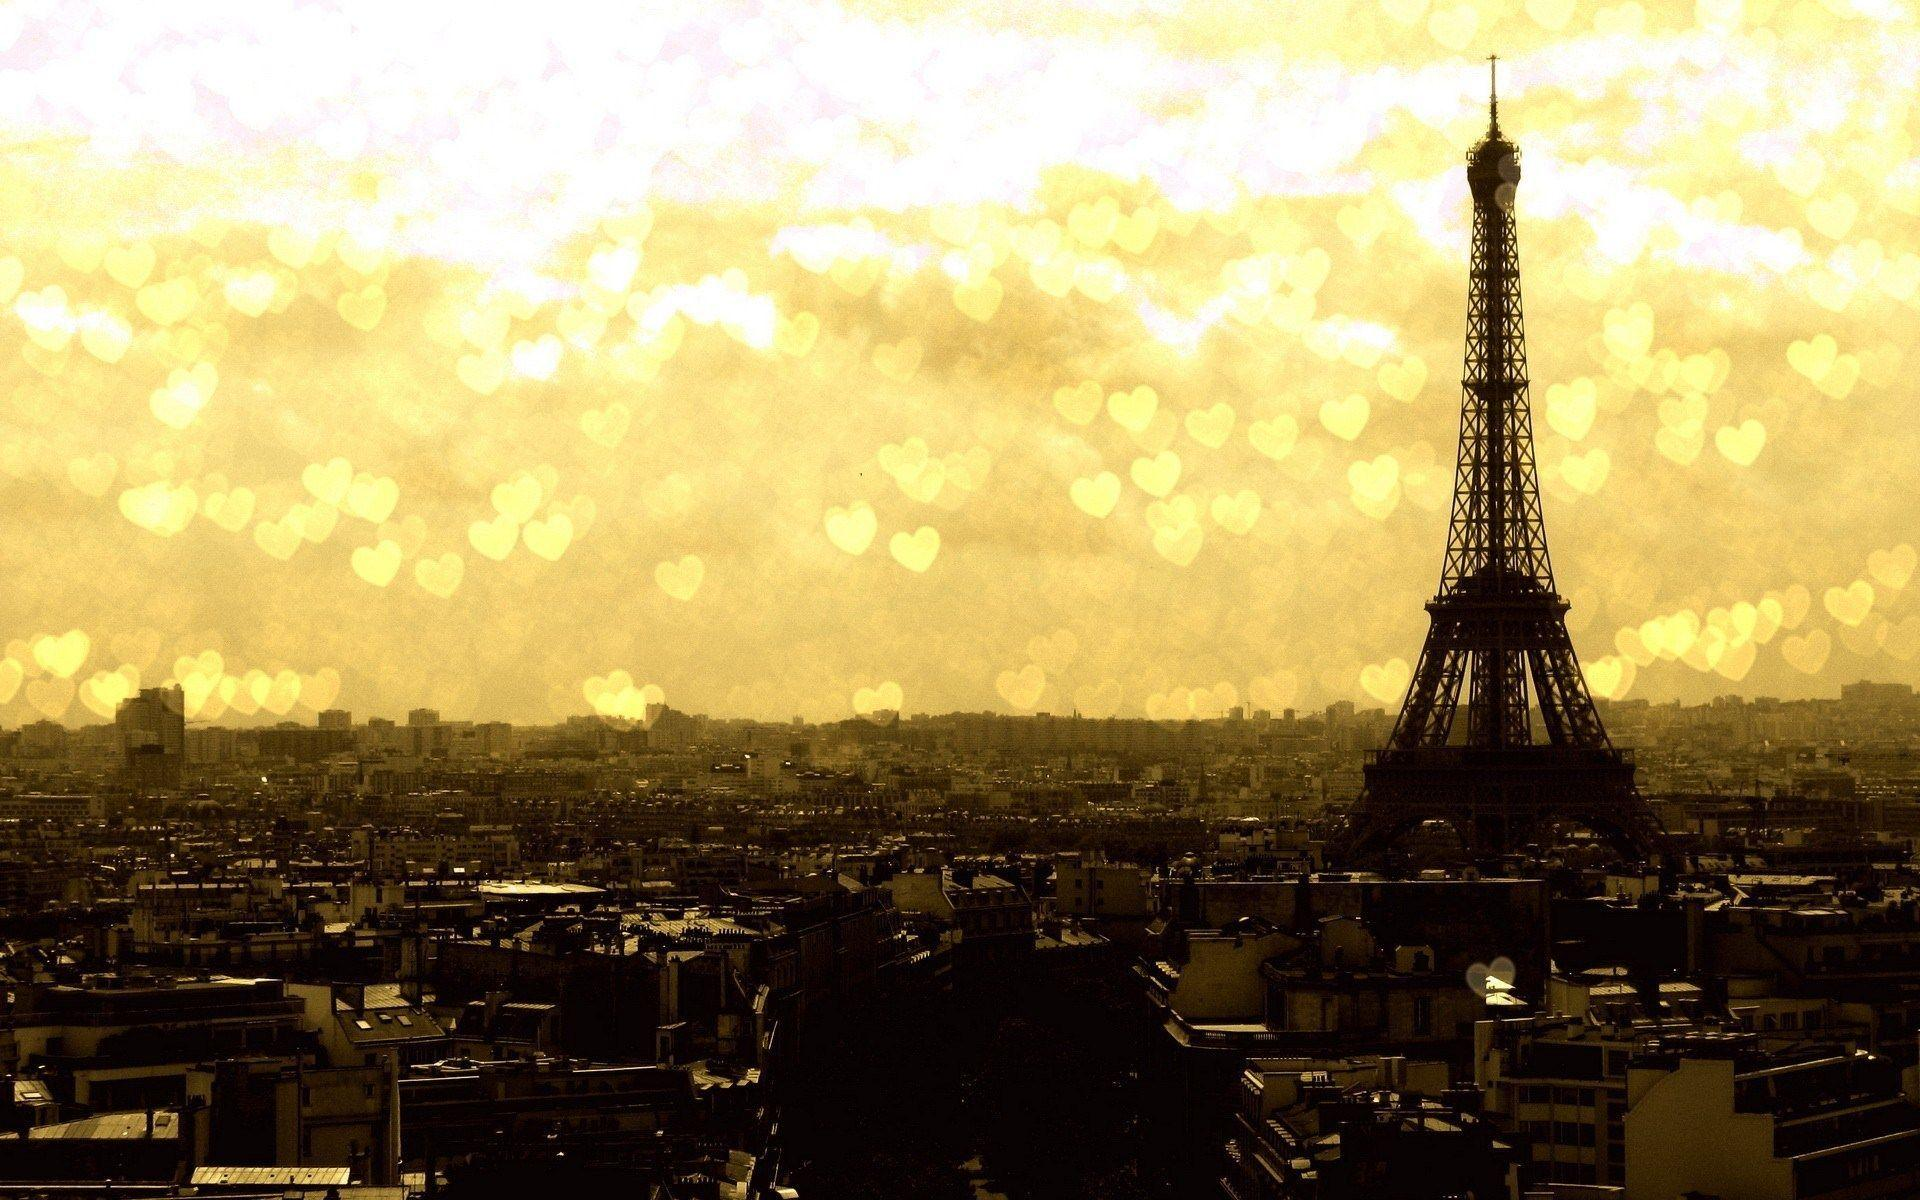 paris wallpaper background 21 - photo #9